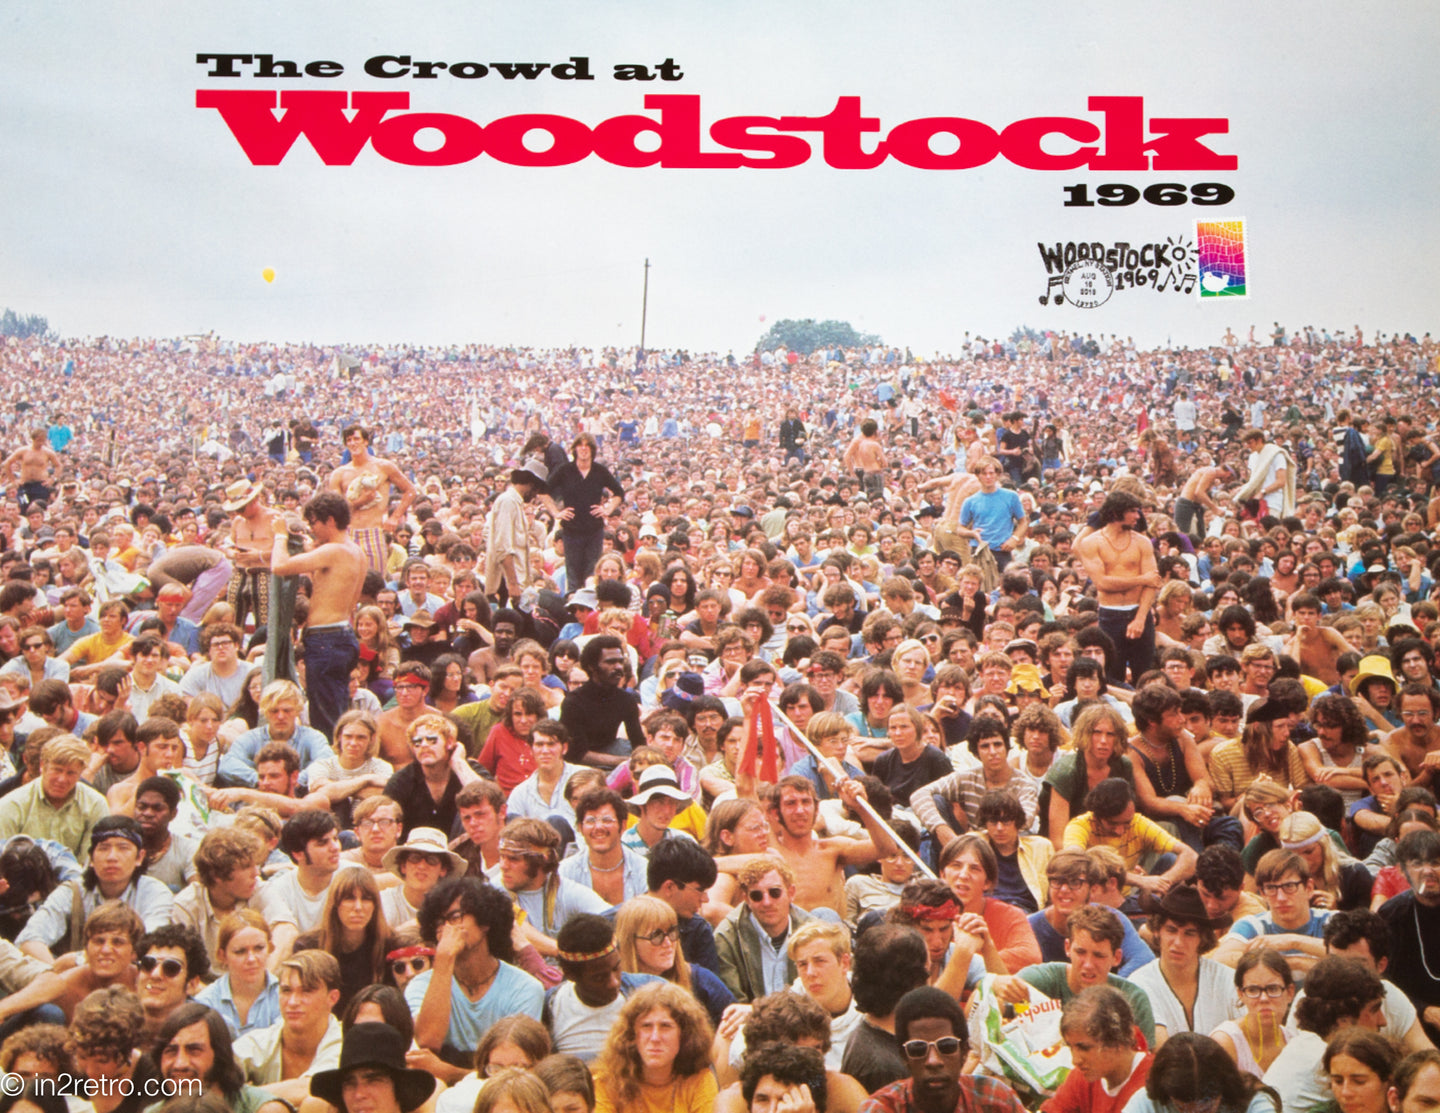 RARE WOODSTOCK 50TH 'THE CROWD' POSTER & US POSTAGE STAMP FROM BETHEL, NY POST OFFICE SHELLY RUSTEN